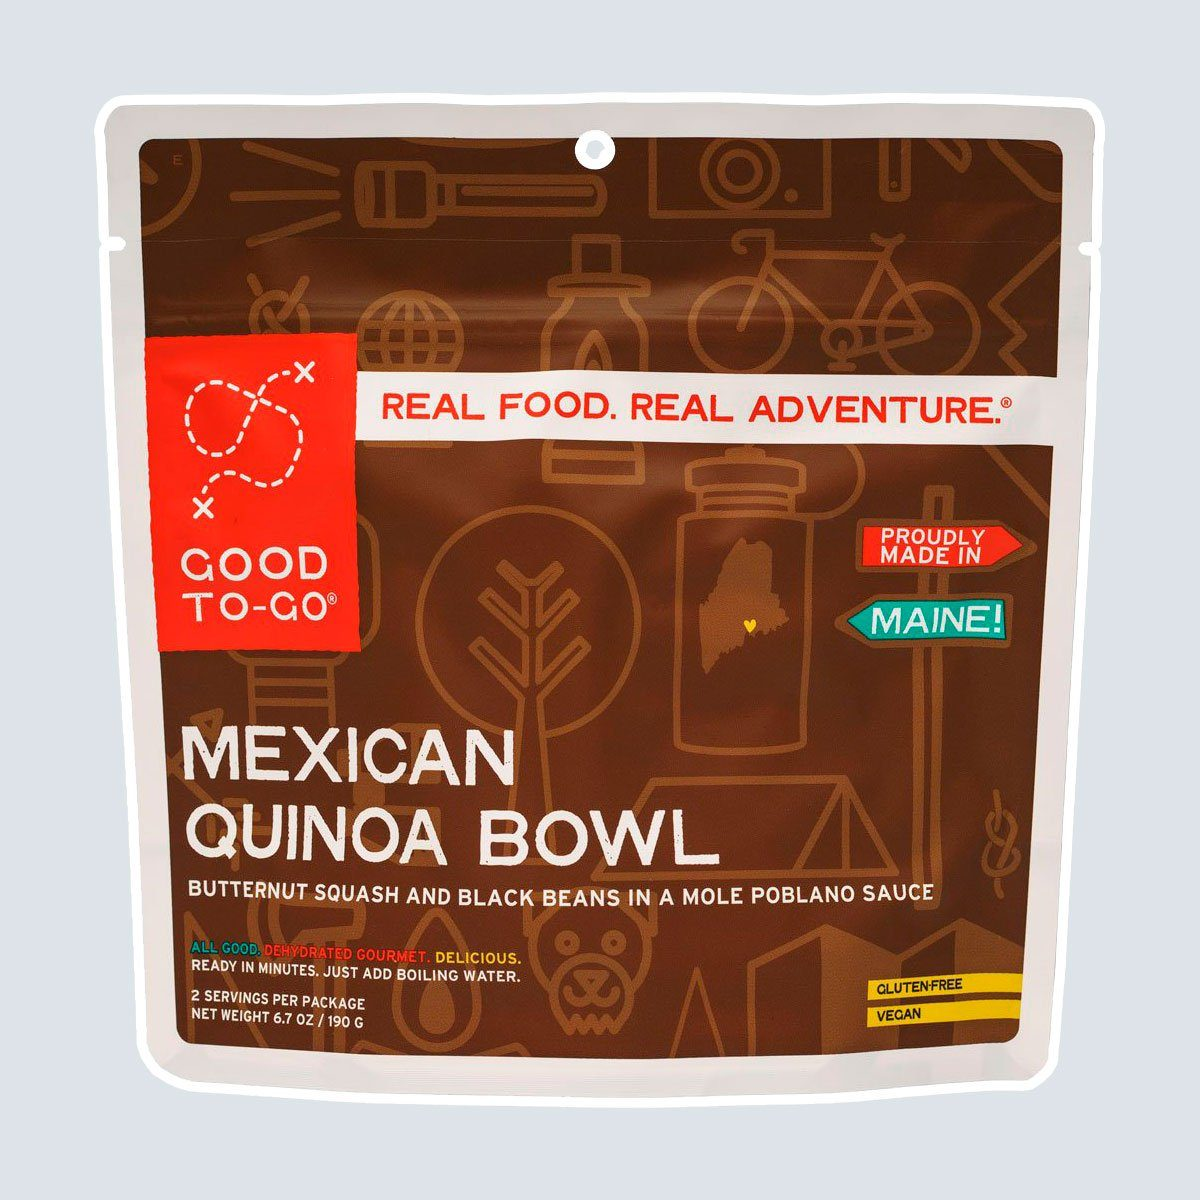 Good To Go Mexican Quinoa Bowl